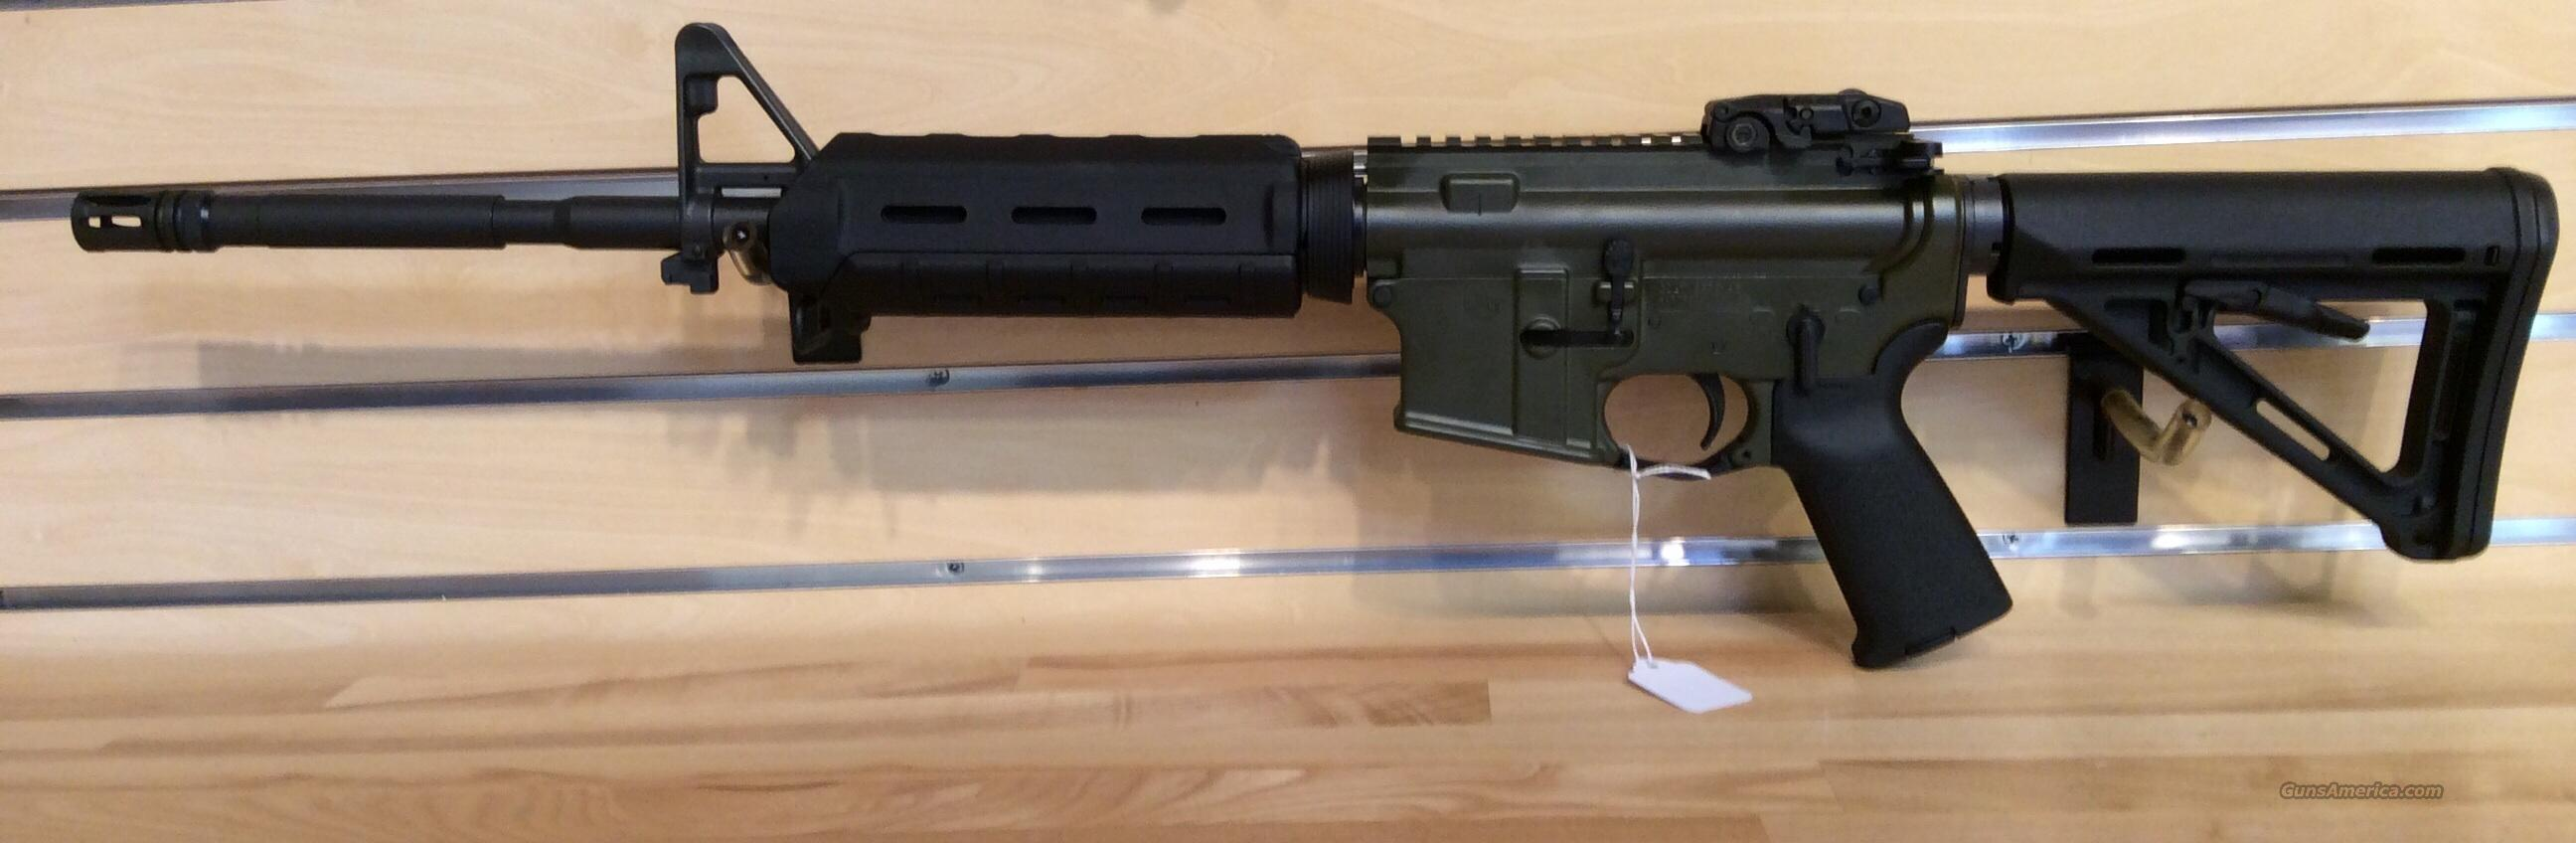 Colt M4 Carbine LE6920  Guns > Rifles > Colt Military/Tactical Rifles